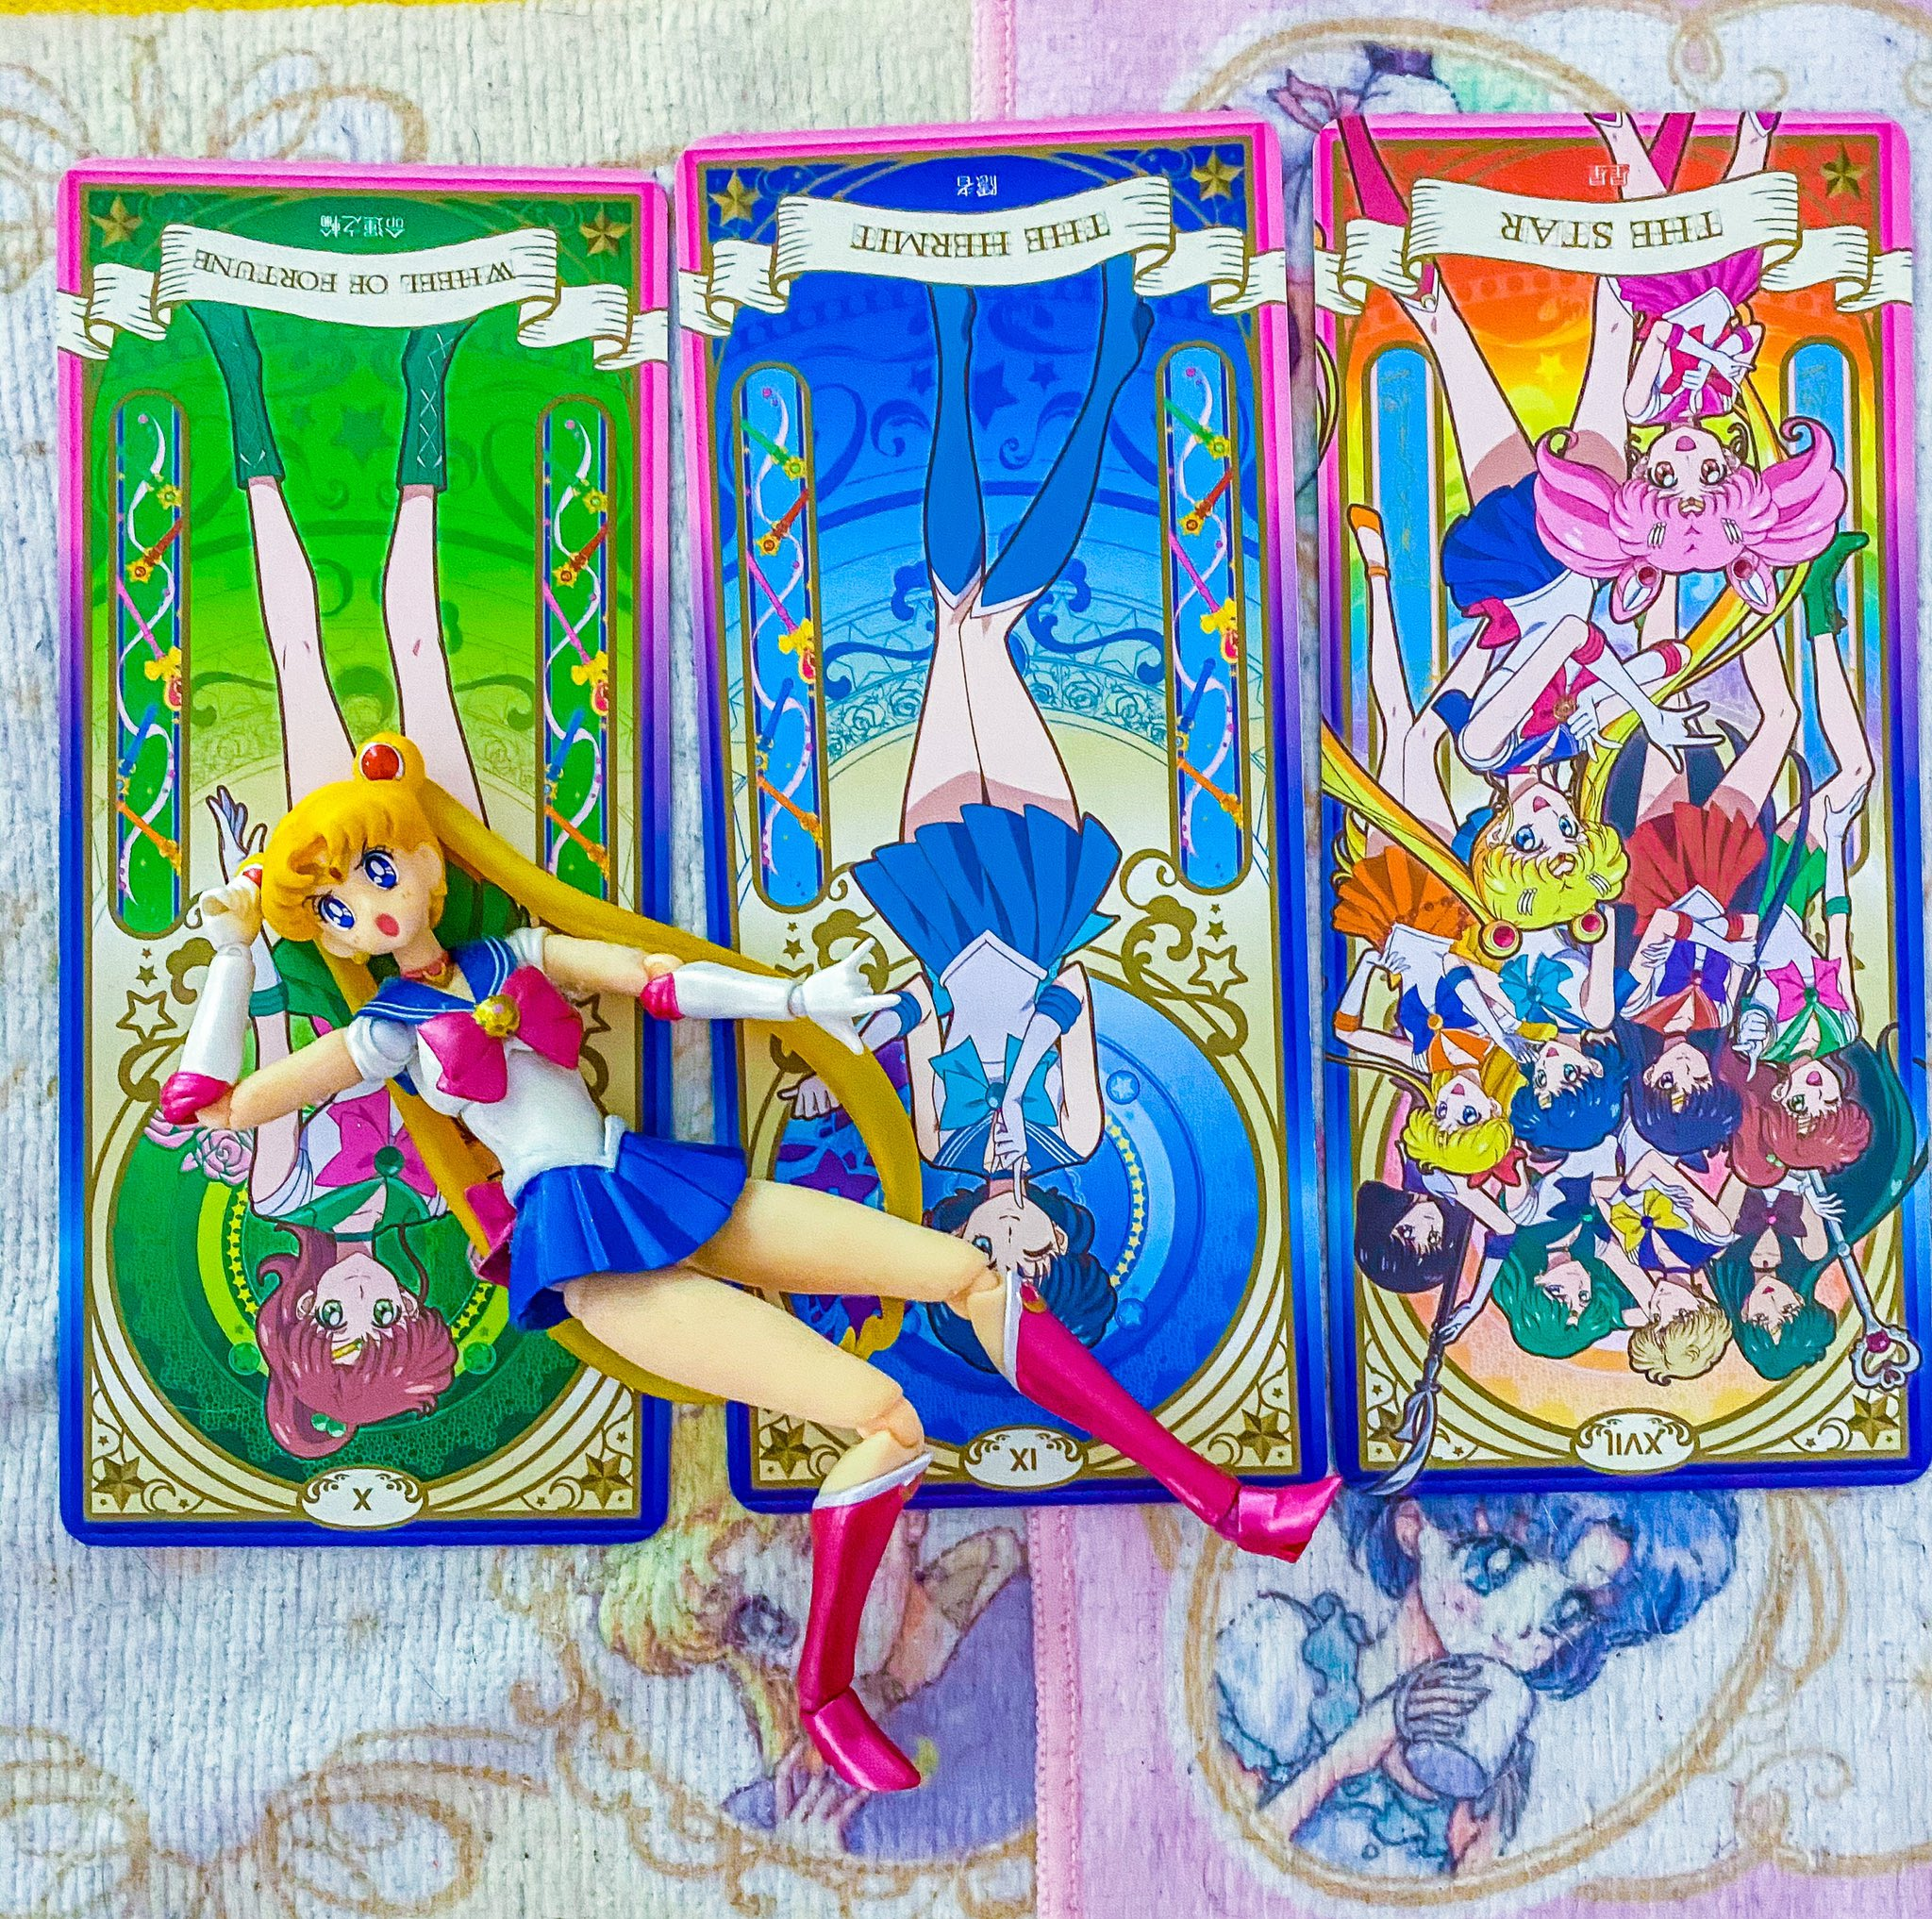 weekly tarot horoscope december 22 2019